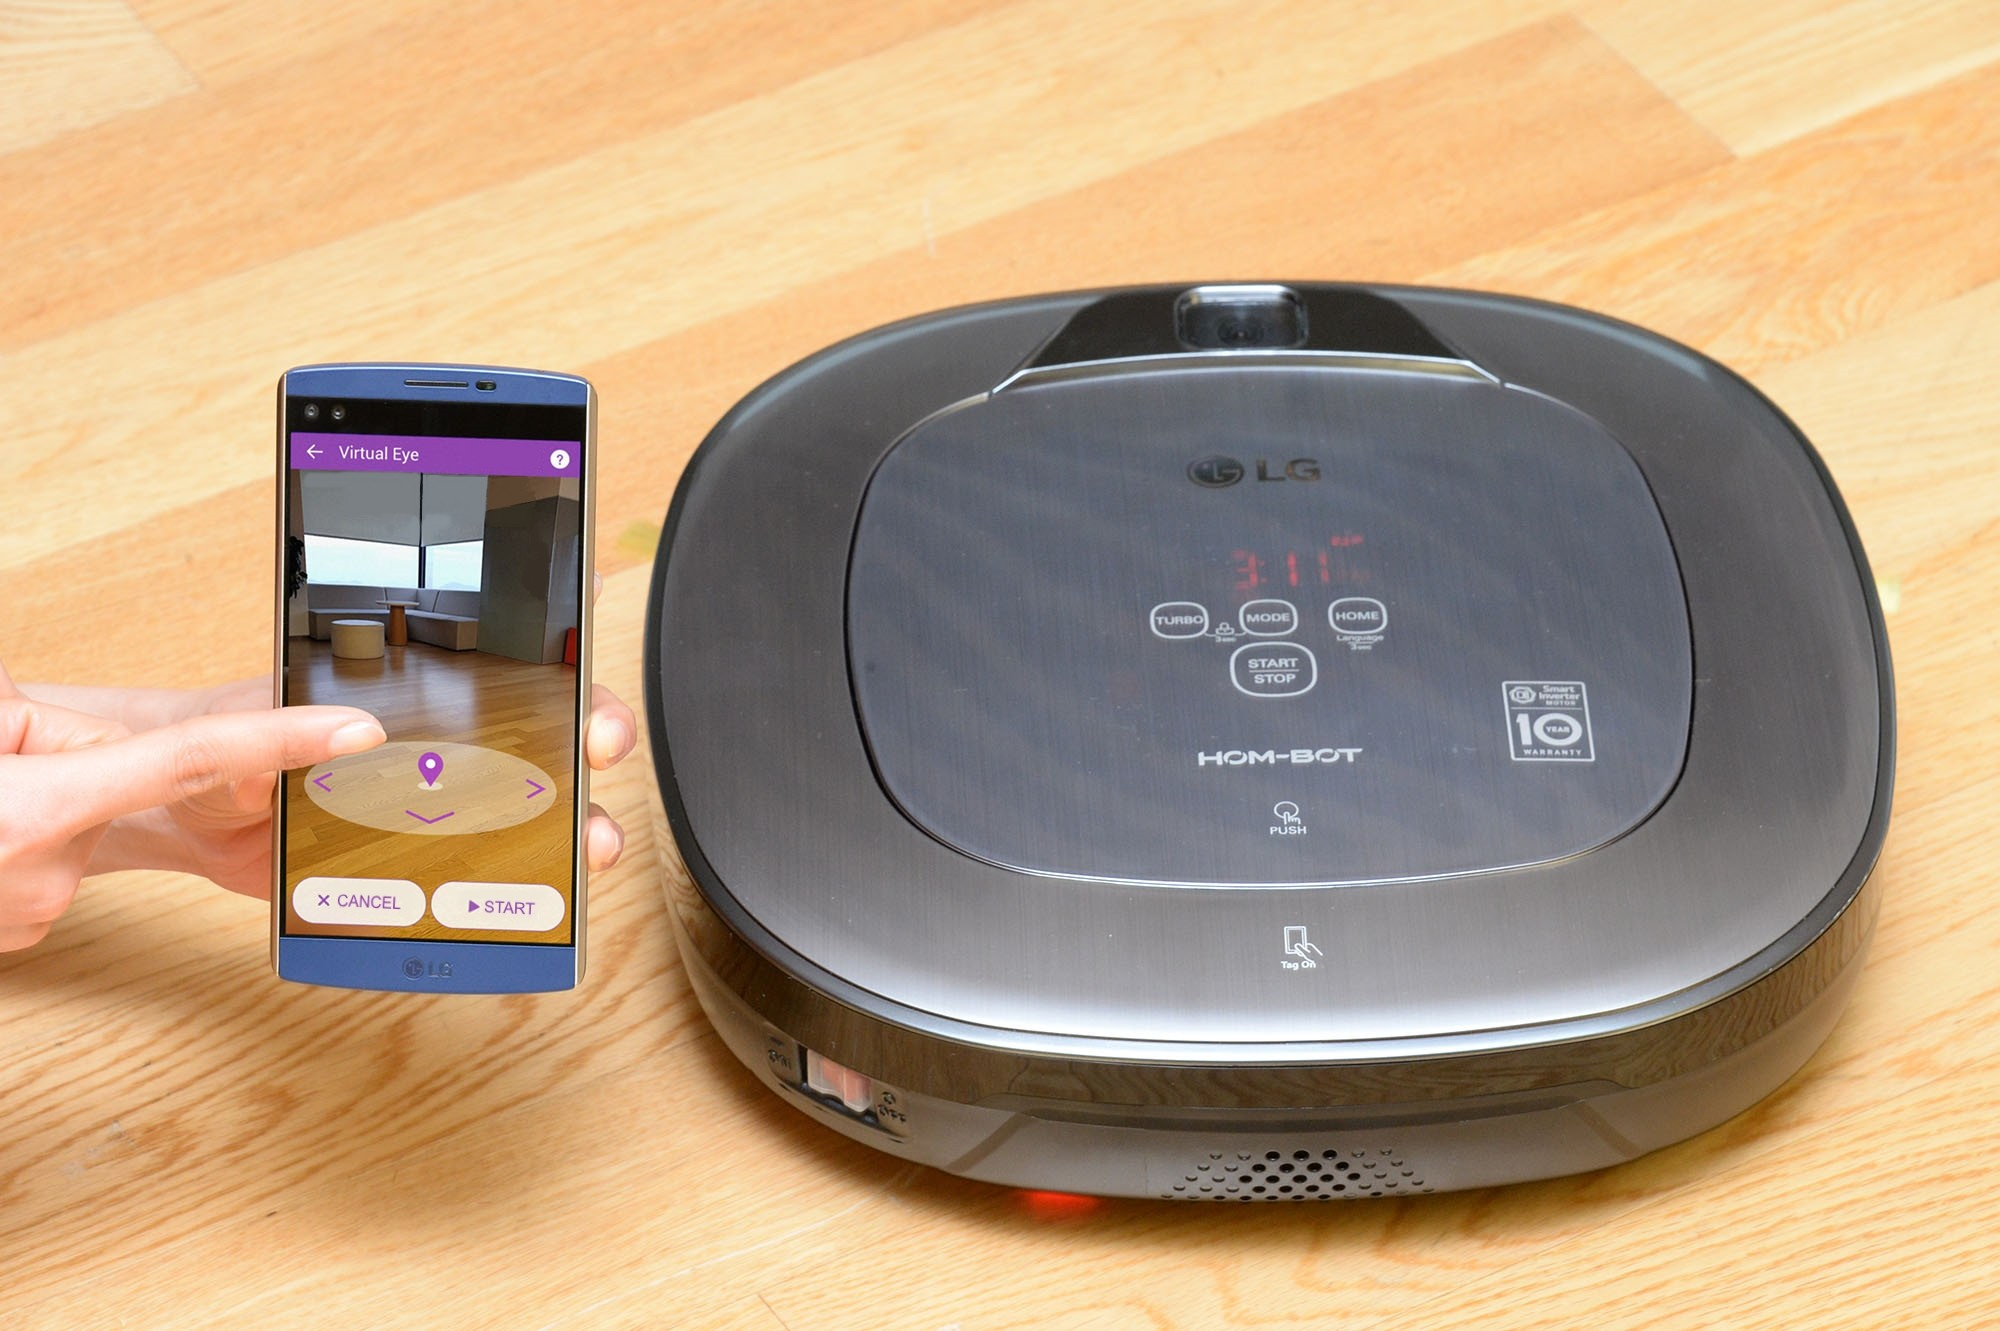 LG HOM-BOT and smartphone with hand visible showing its location